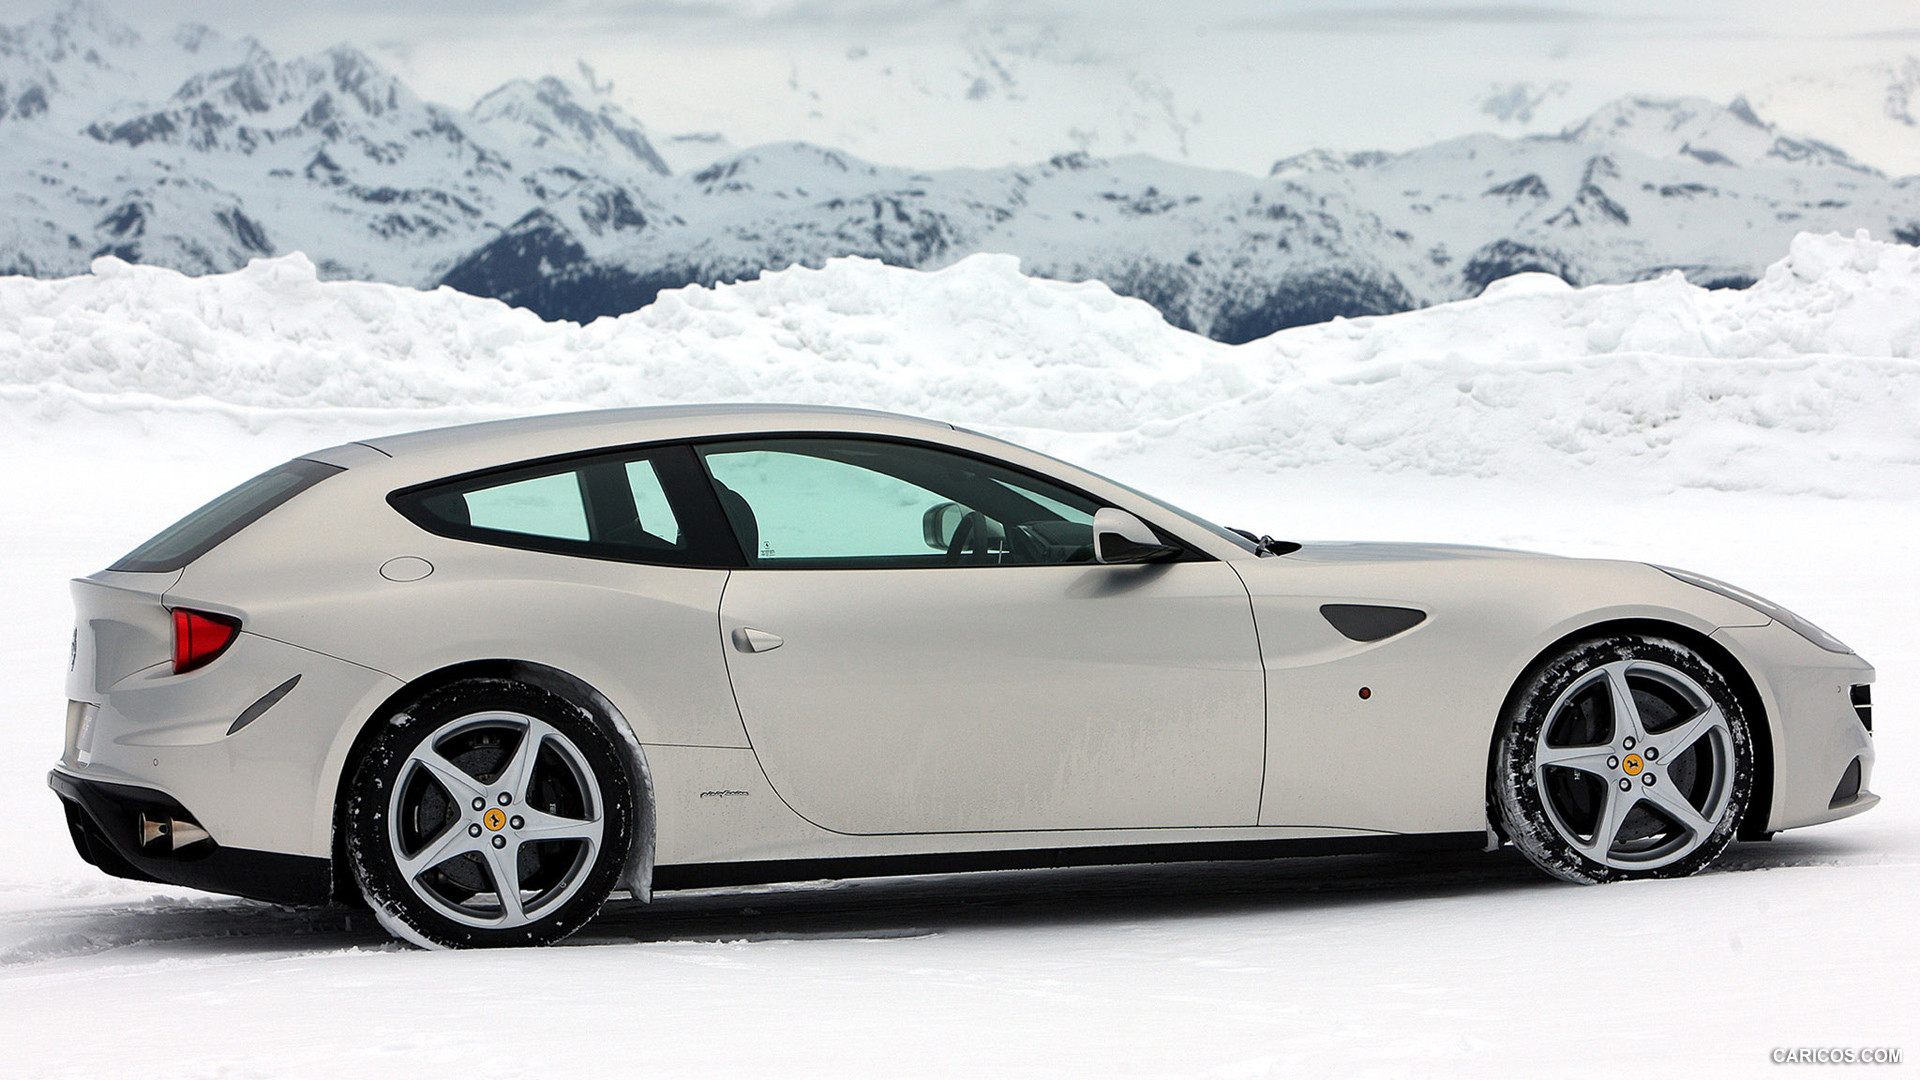 1920x1080 - Ferrari FF Wallpapers 34